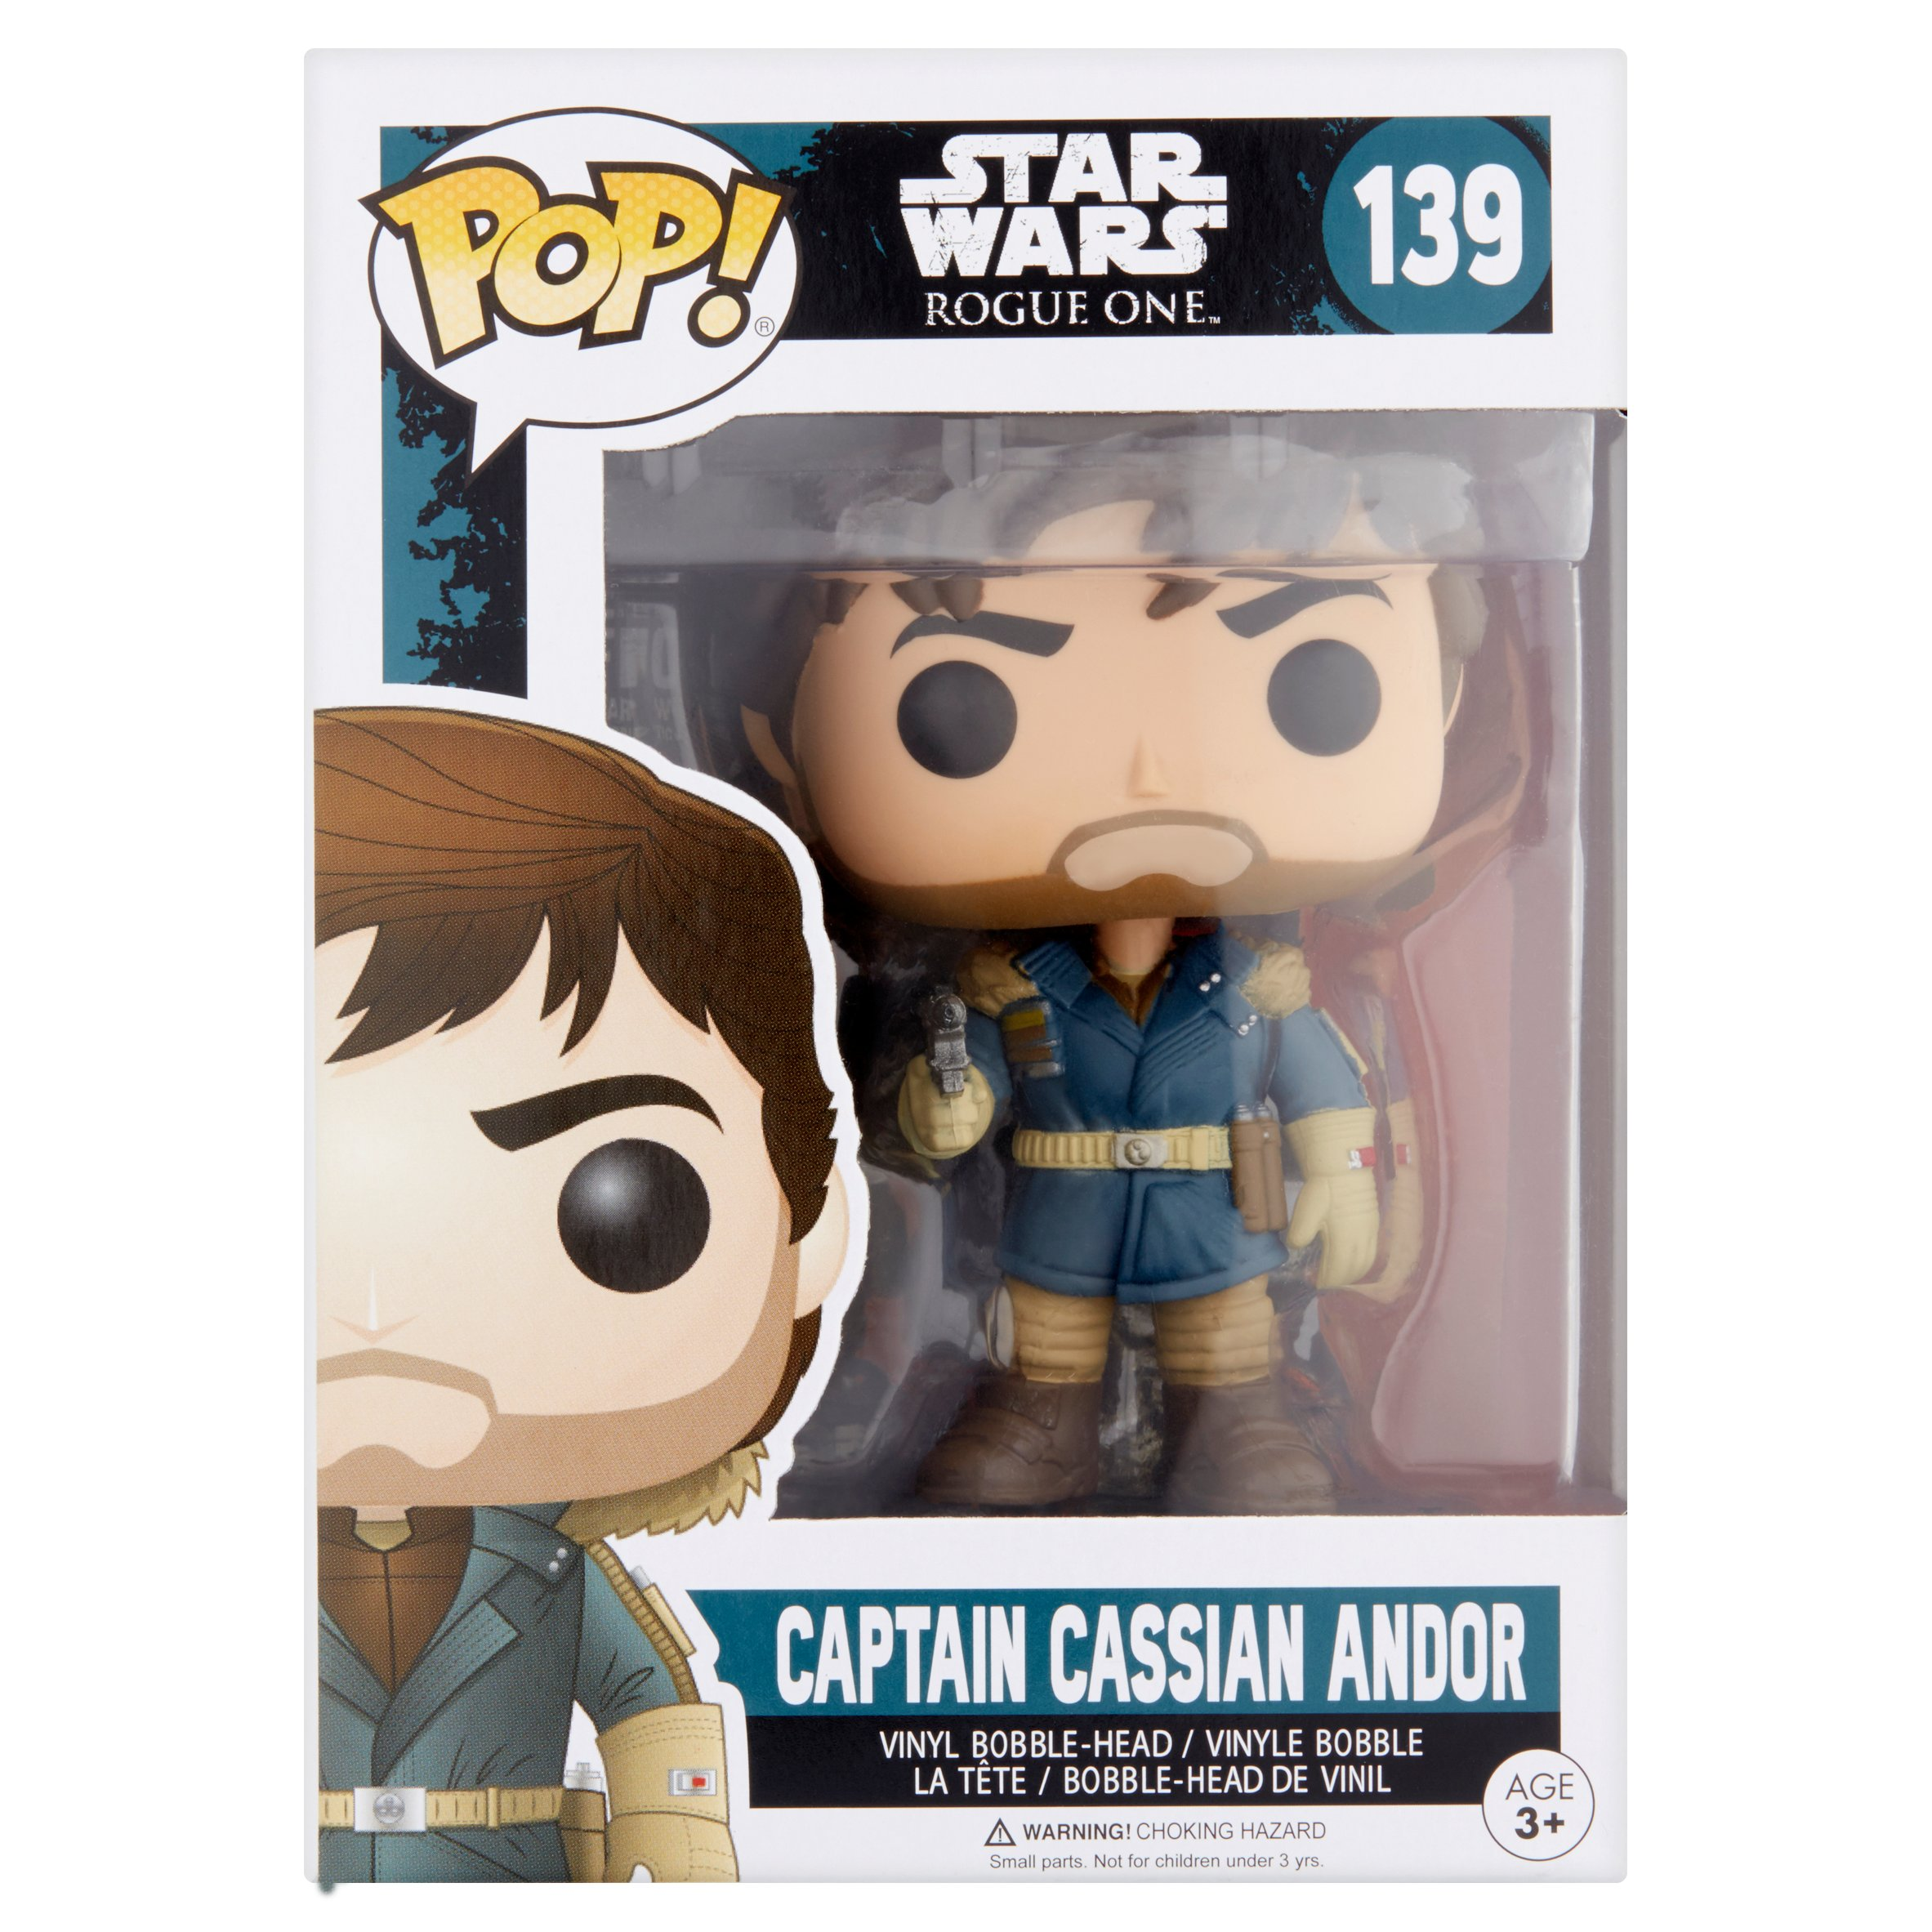 Pop! Star Wars Rogue One 139 Captain Cassian Andor Vinyl Bobble-Head Figure Age 3+